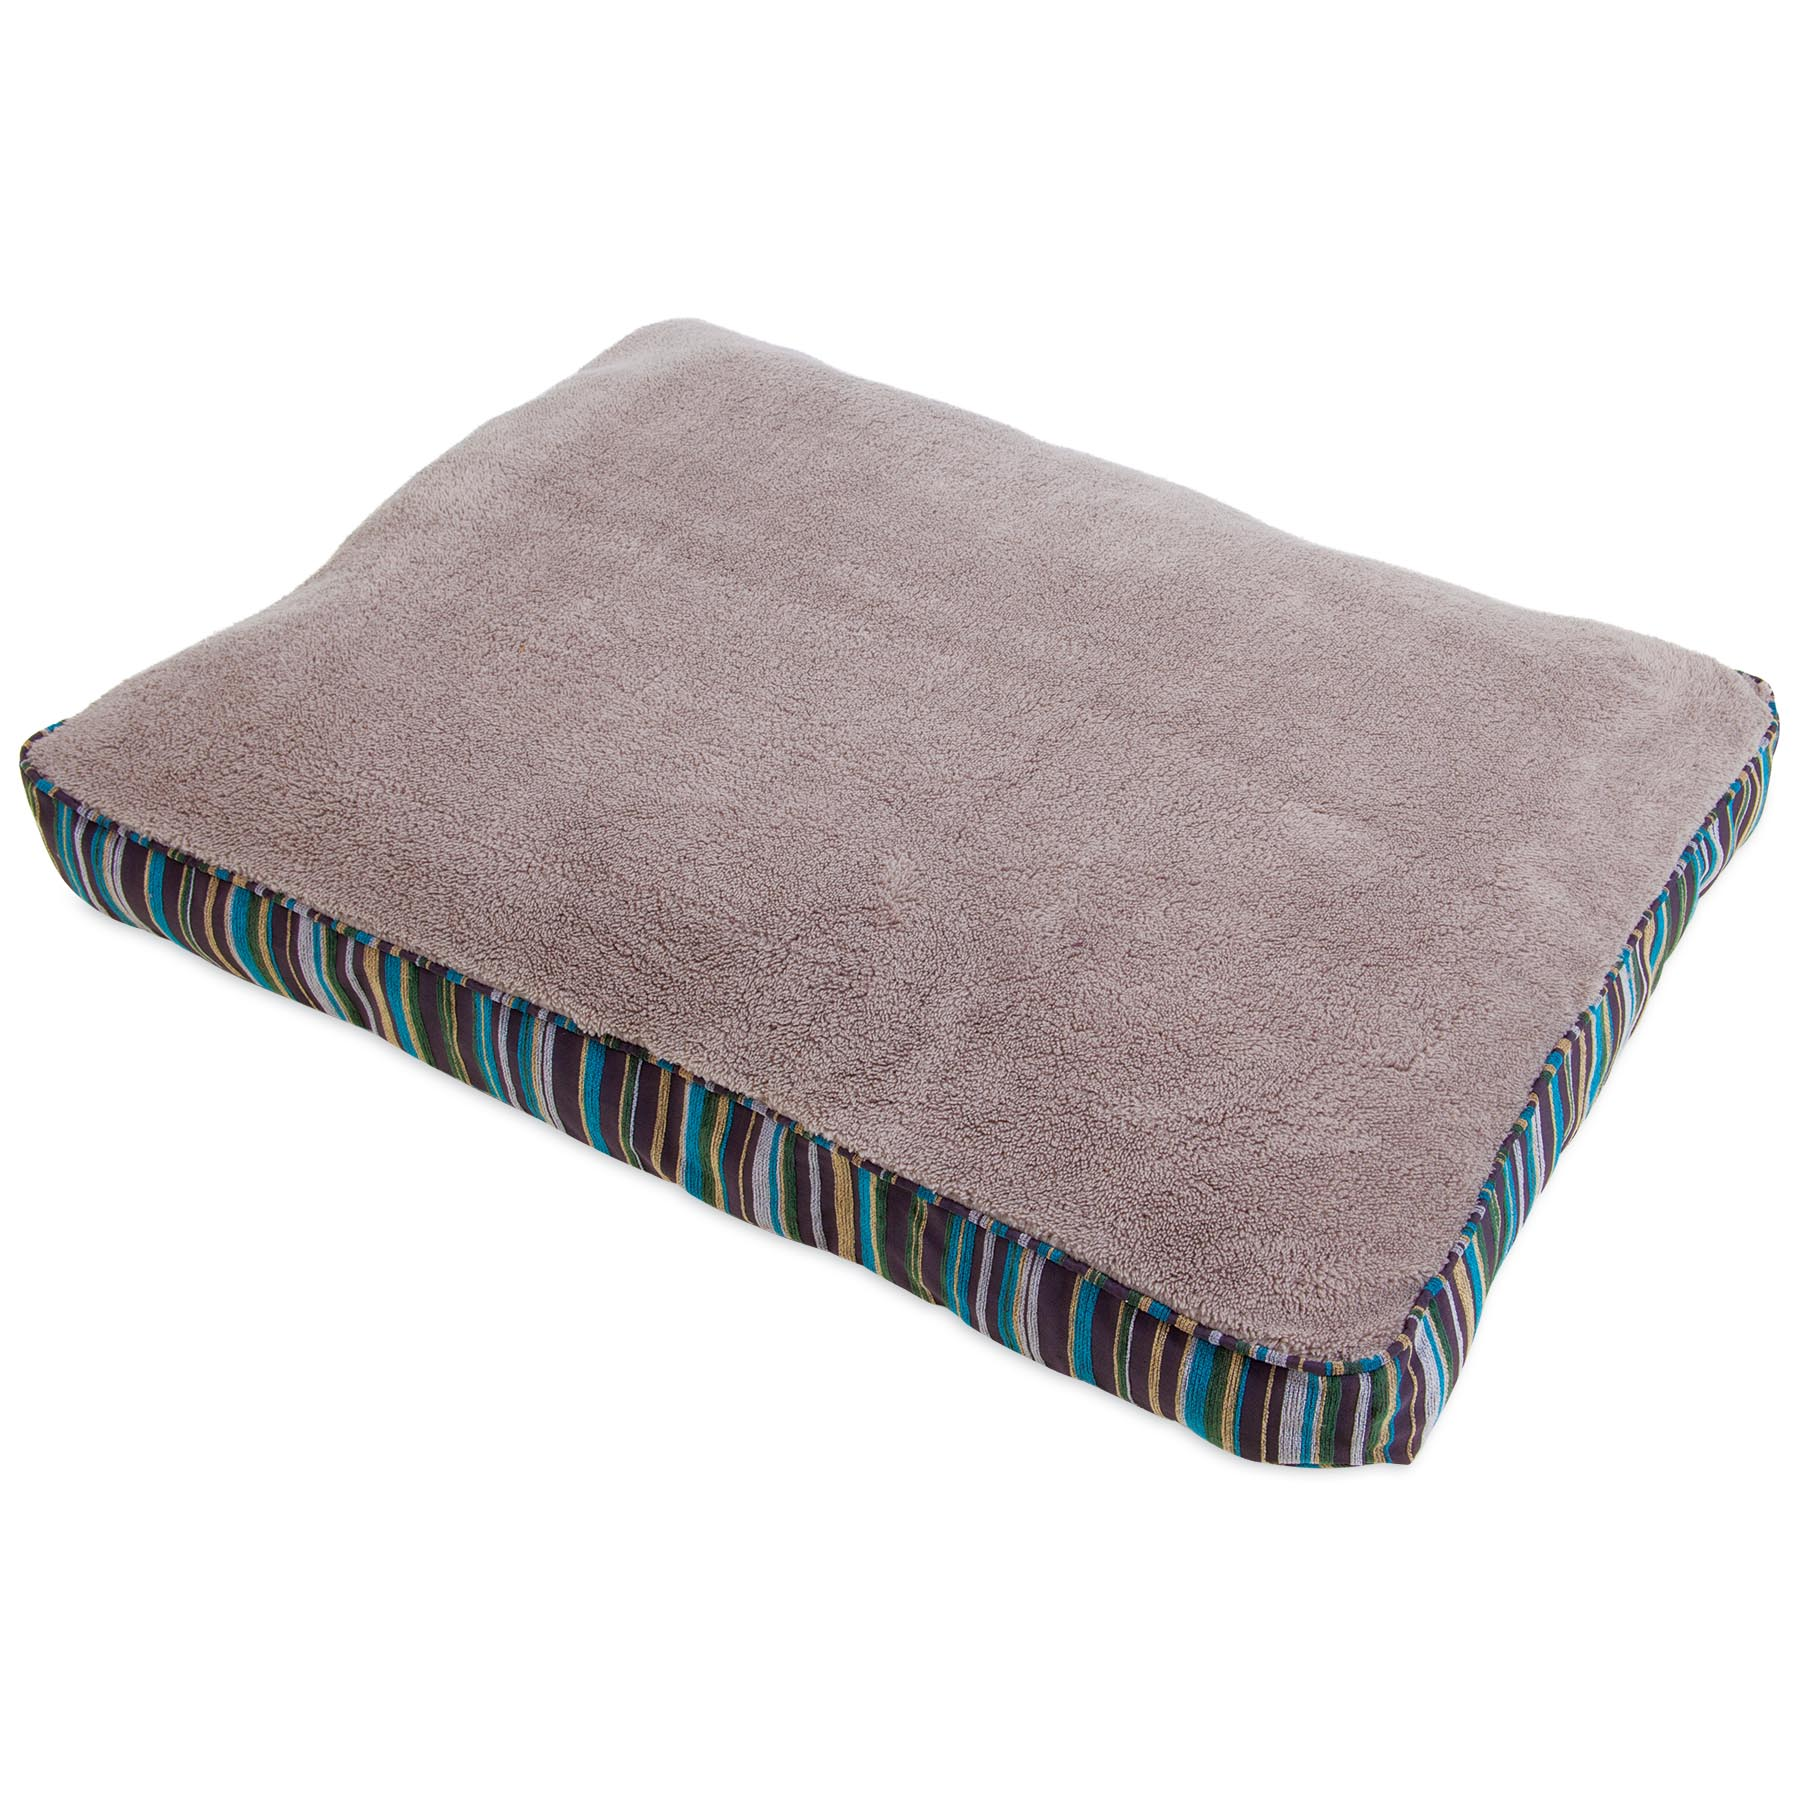 Aspen Pet Antimicrobial Dog bed with Deluxe Pillow, 27 X 36